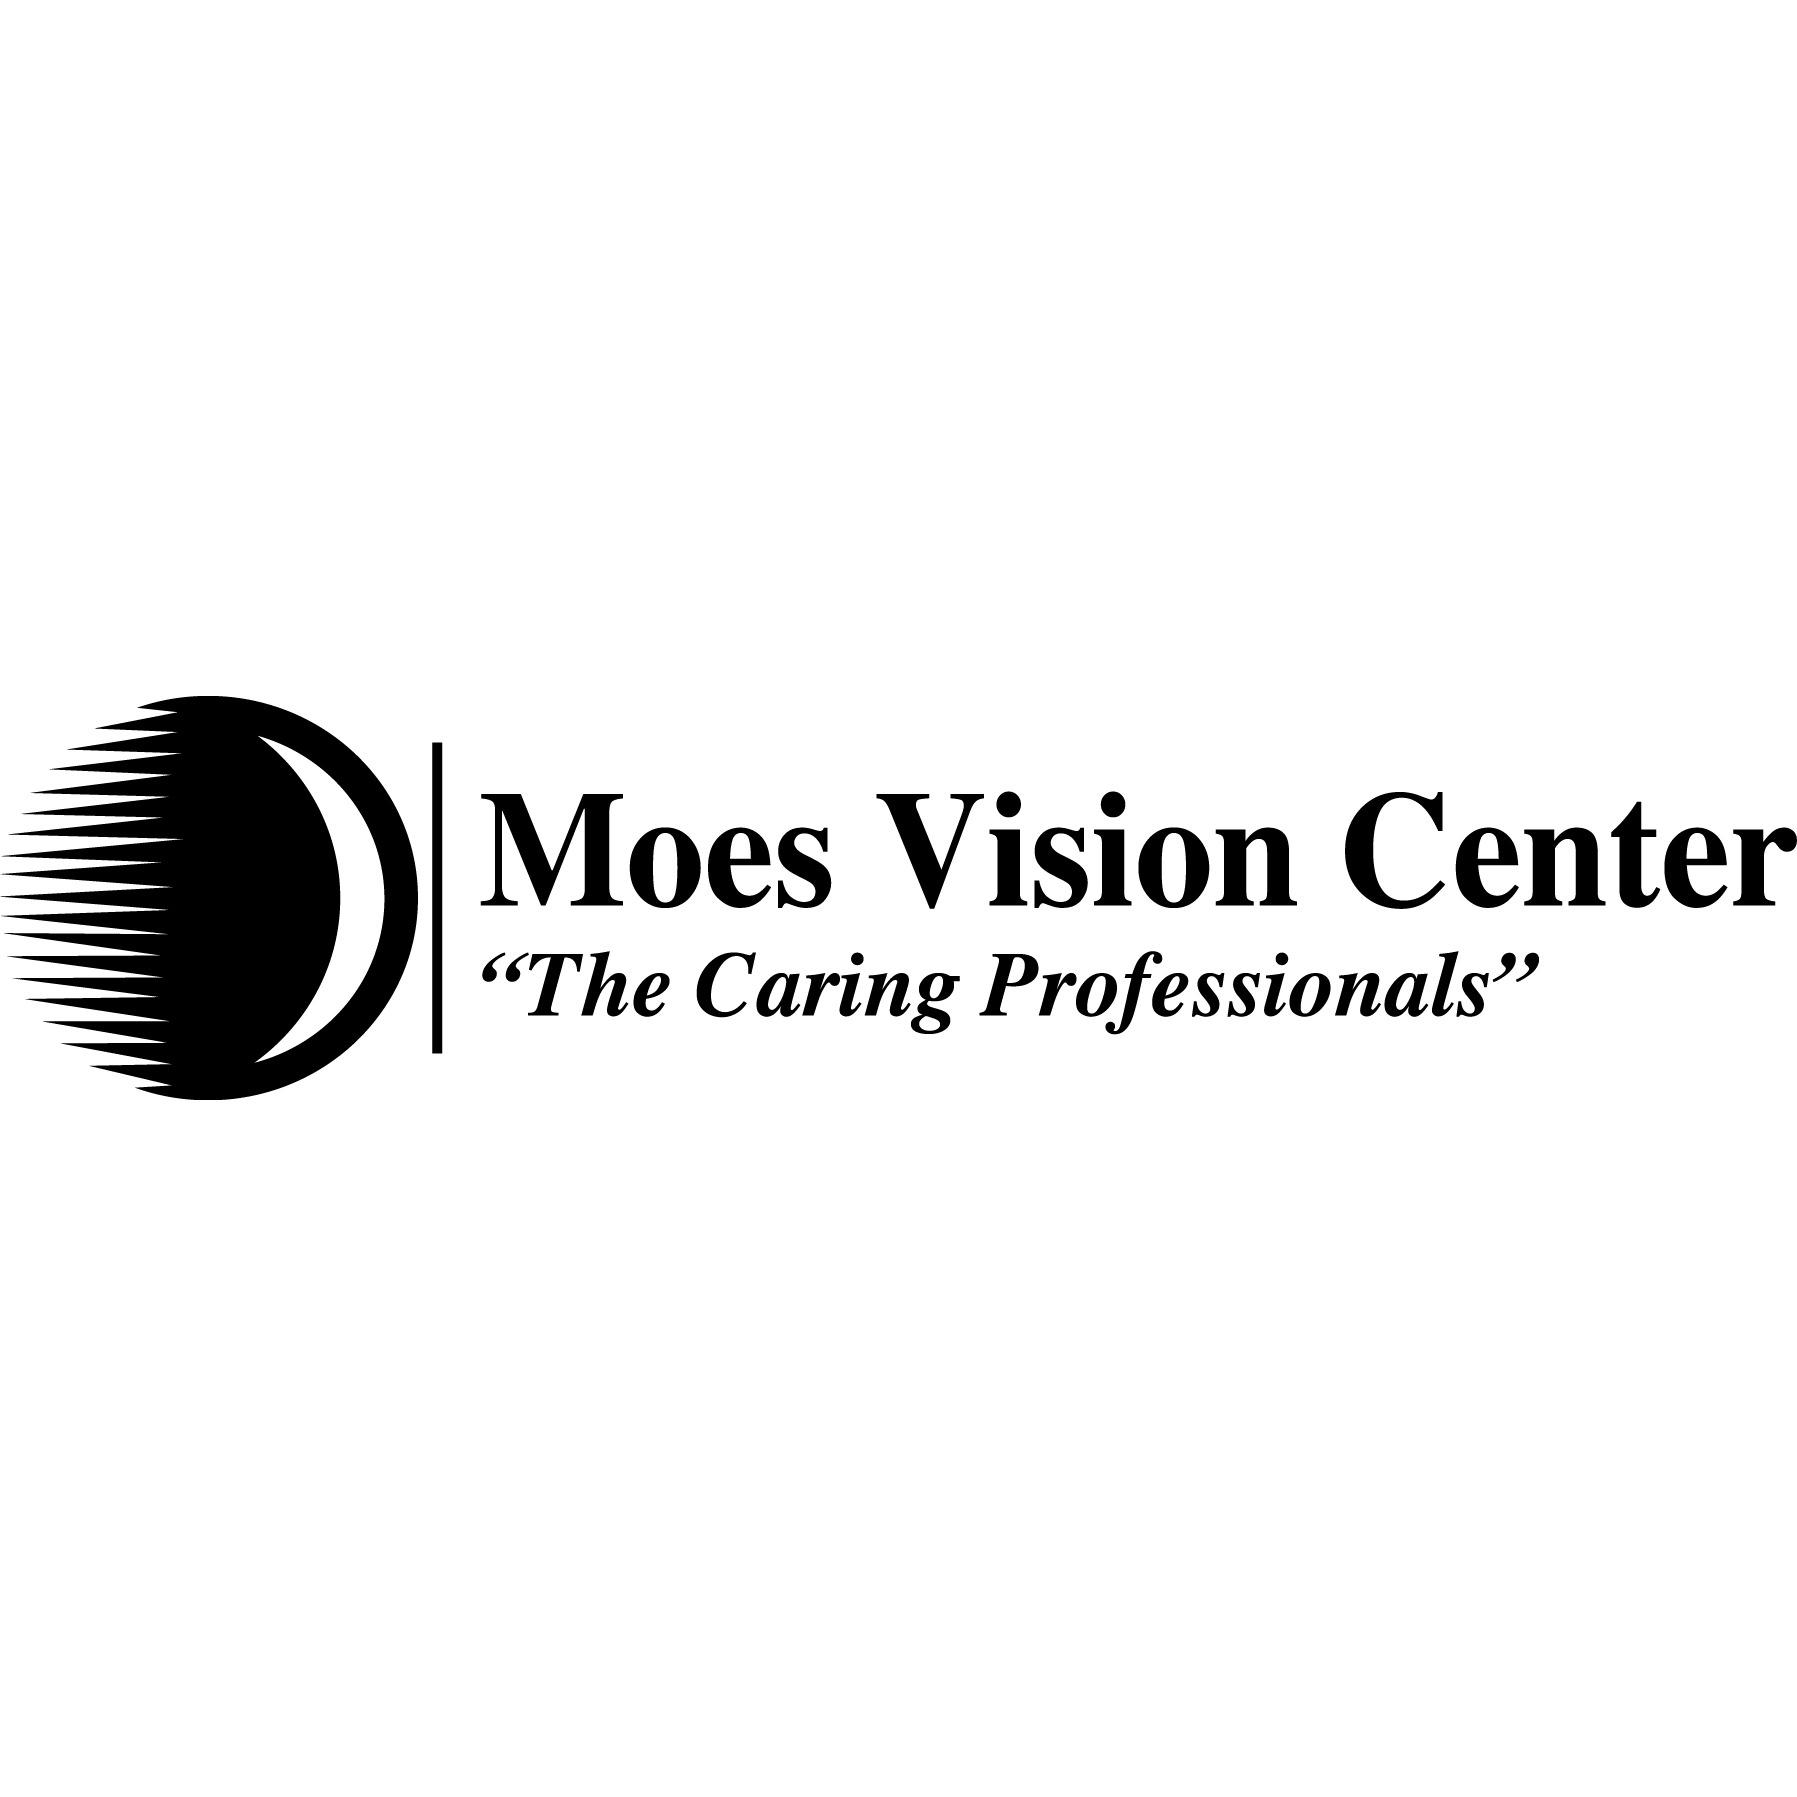 Moes Vision Center image 1